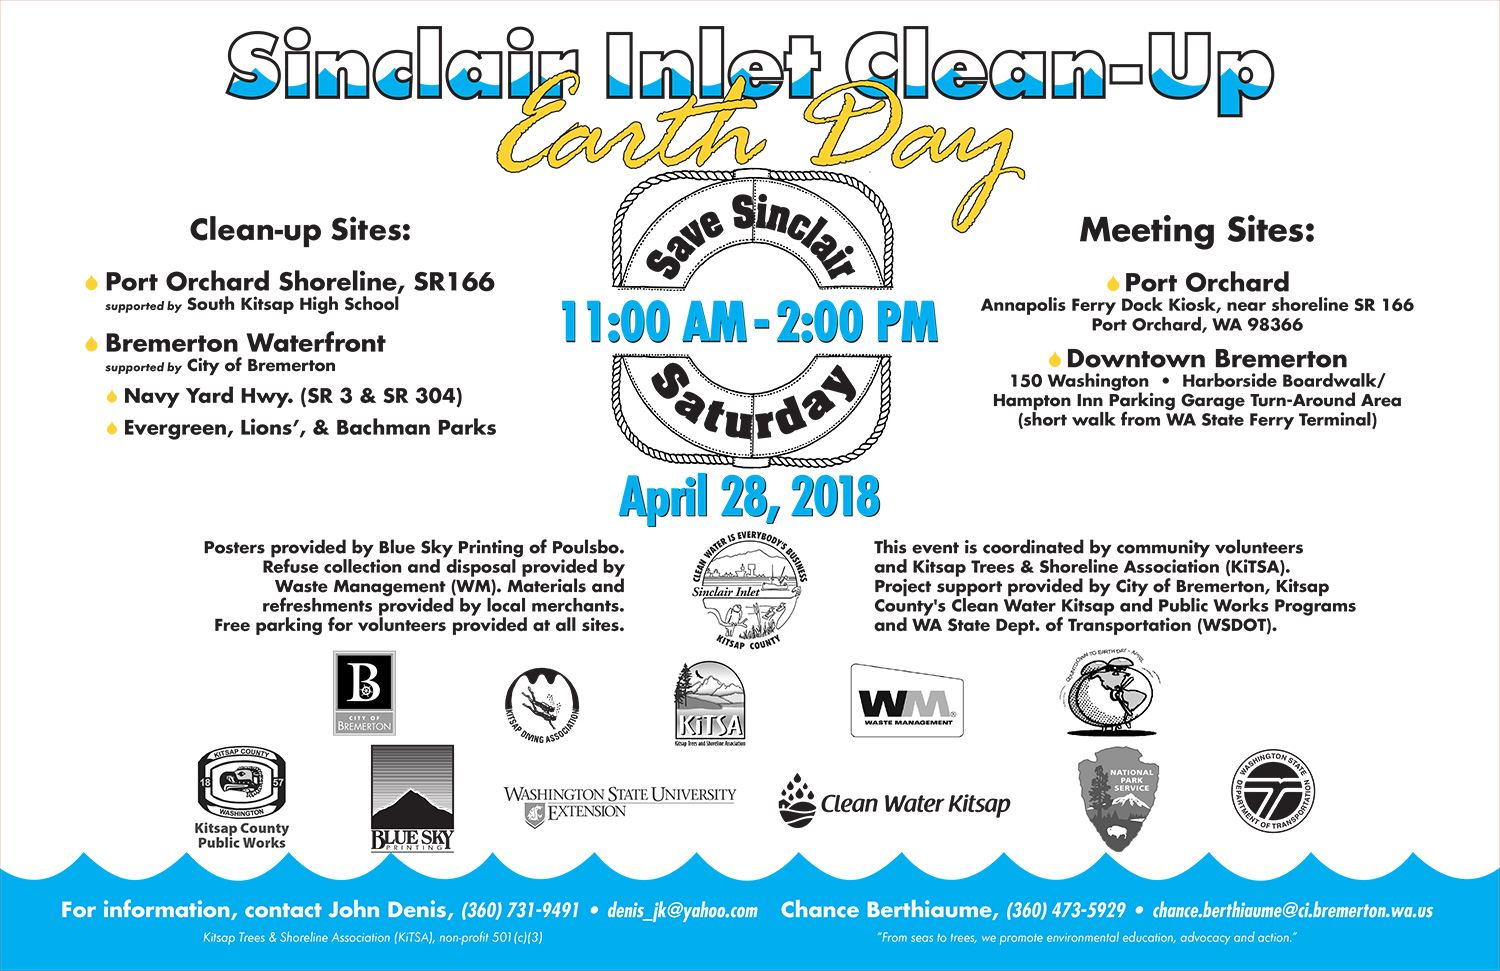 Sinclair Inlet Cleanup